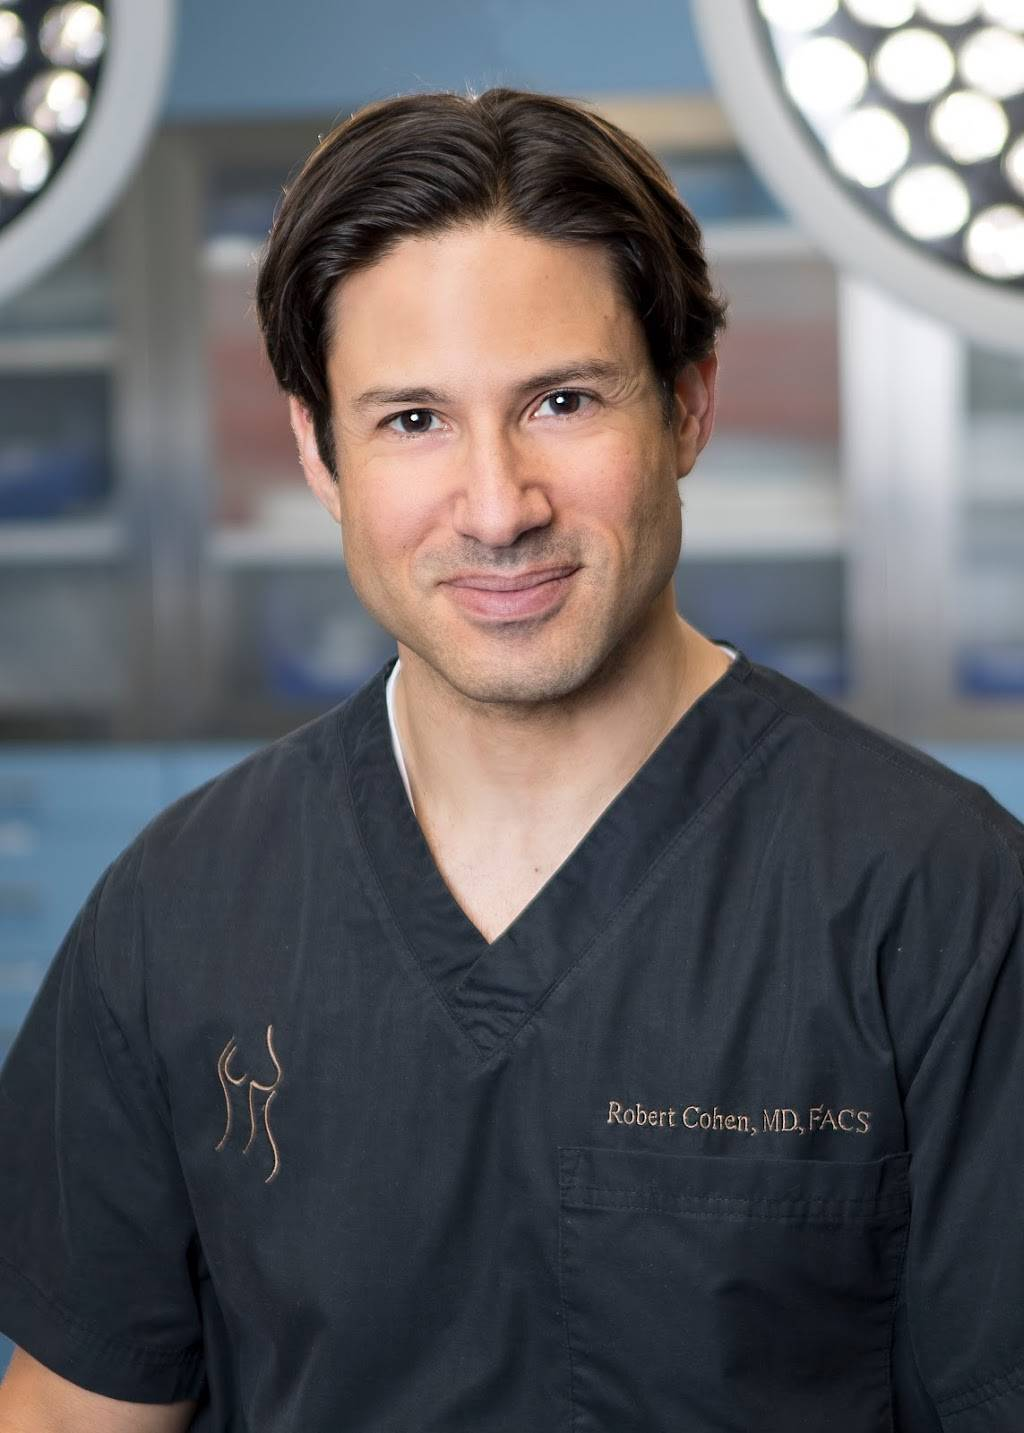 Robert Cohen, MD - doctor    Photo 1 of 10   Address: 5410 N Scottsdale Rd A-500, Paradise Valley, AZ 85253, USA   Phone: (480) 423-1973